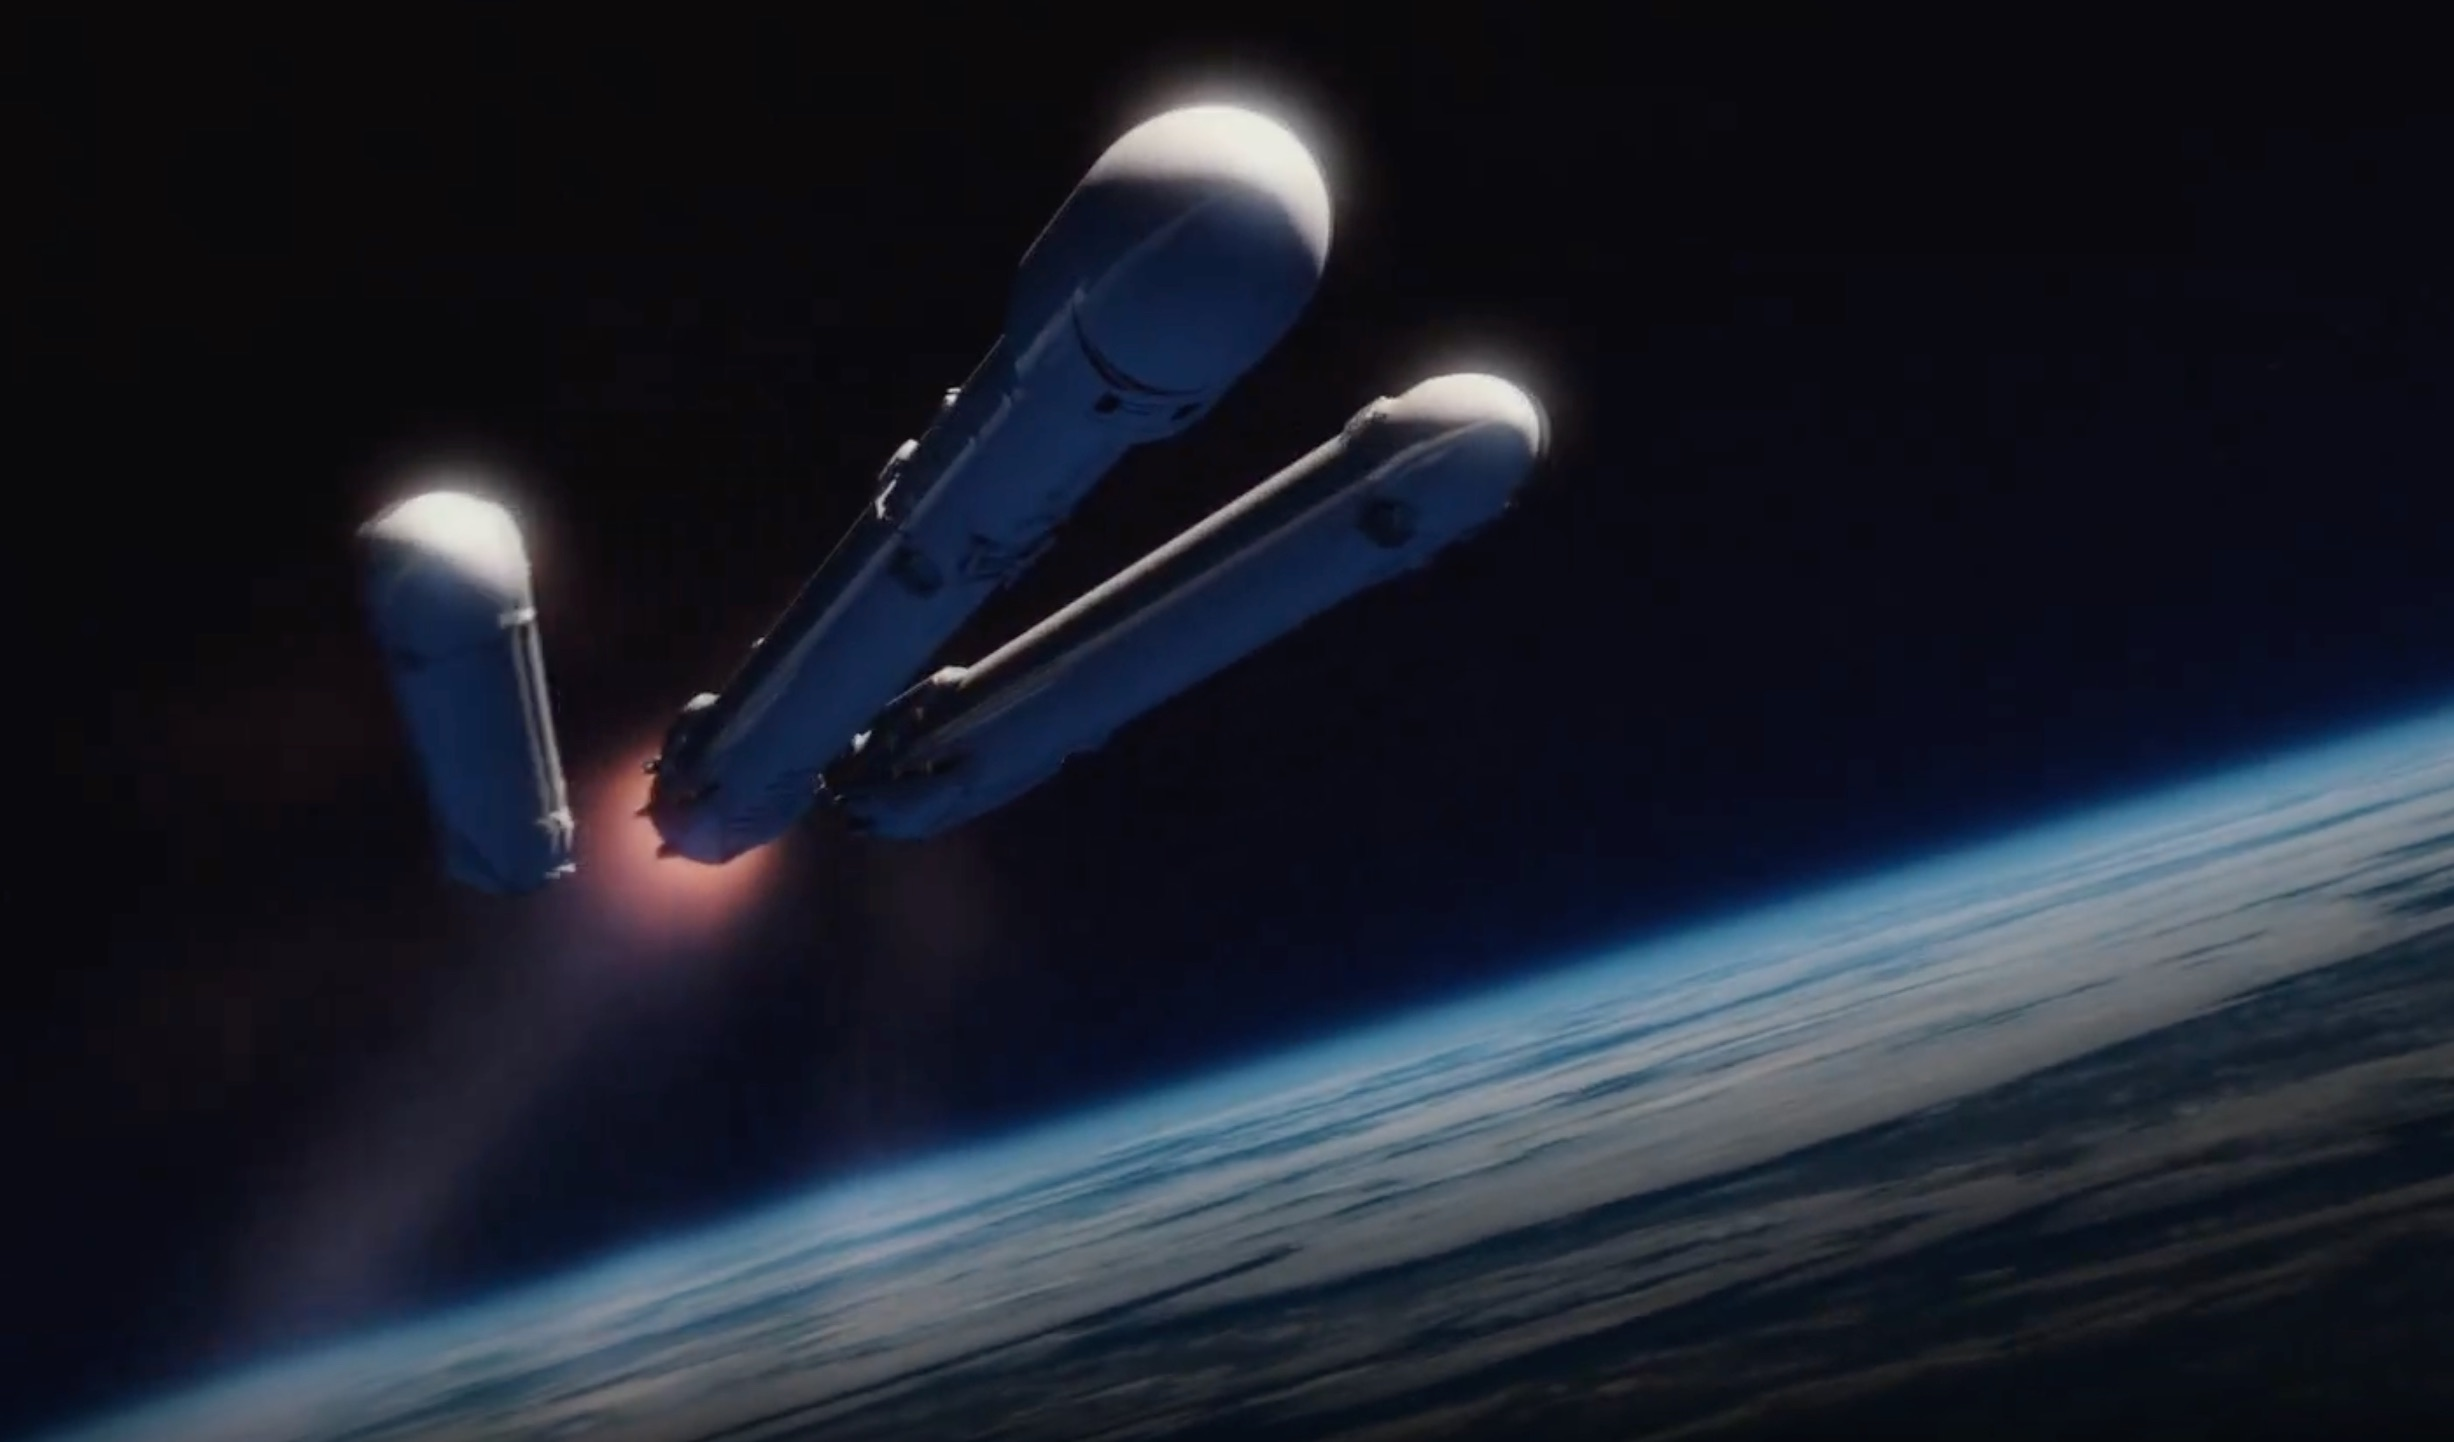 spacex-falcon-heavy-3-boosters-return-earth